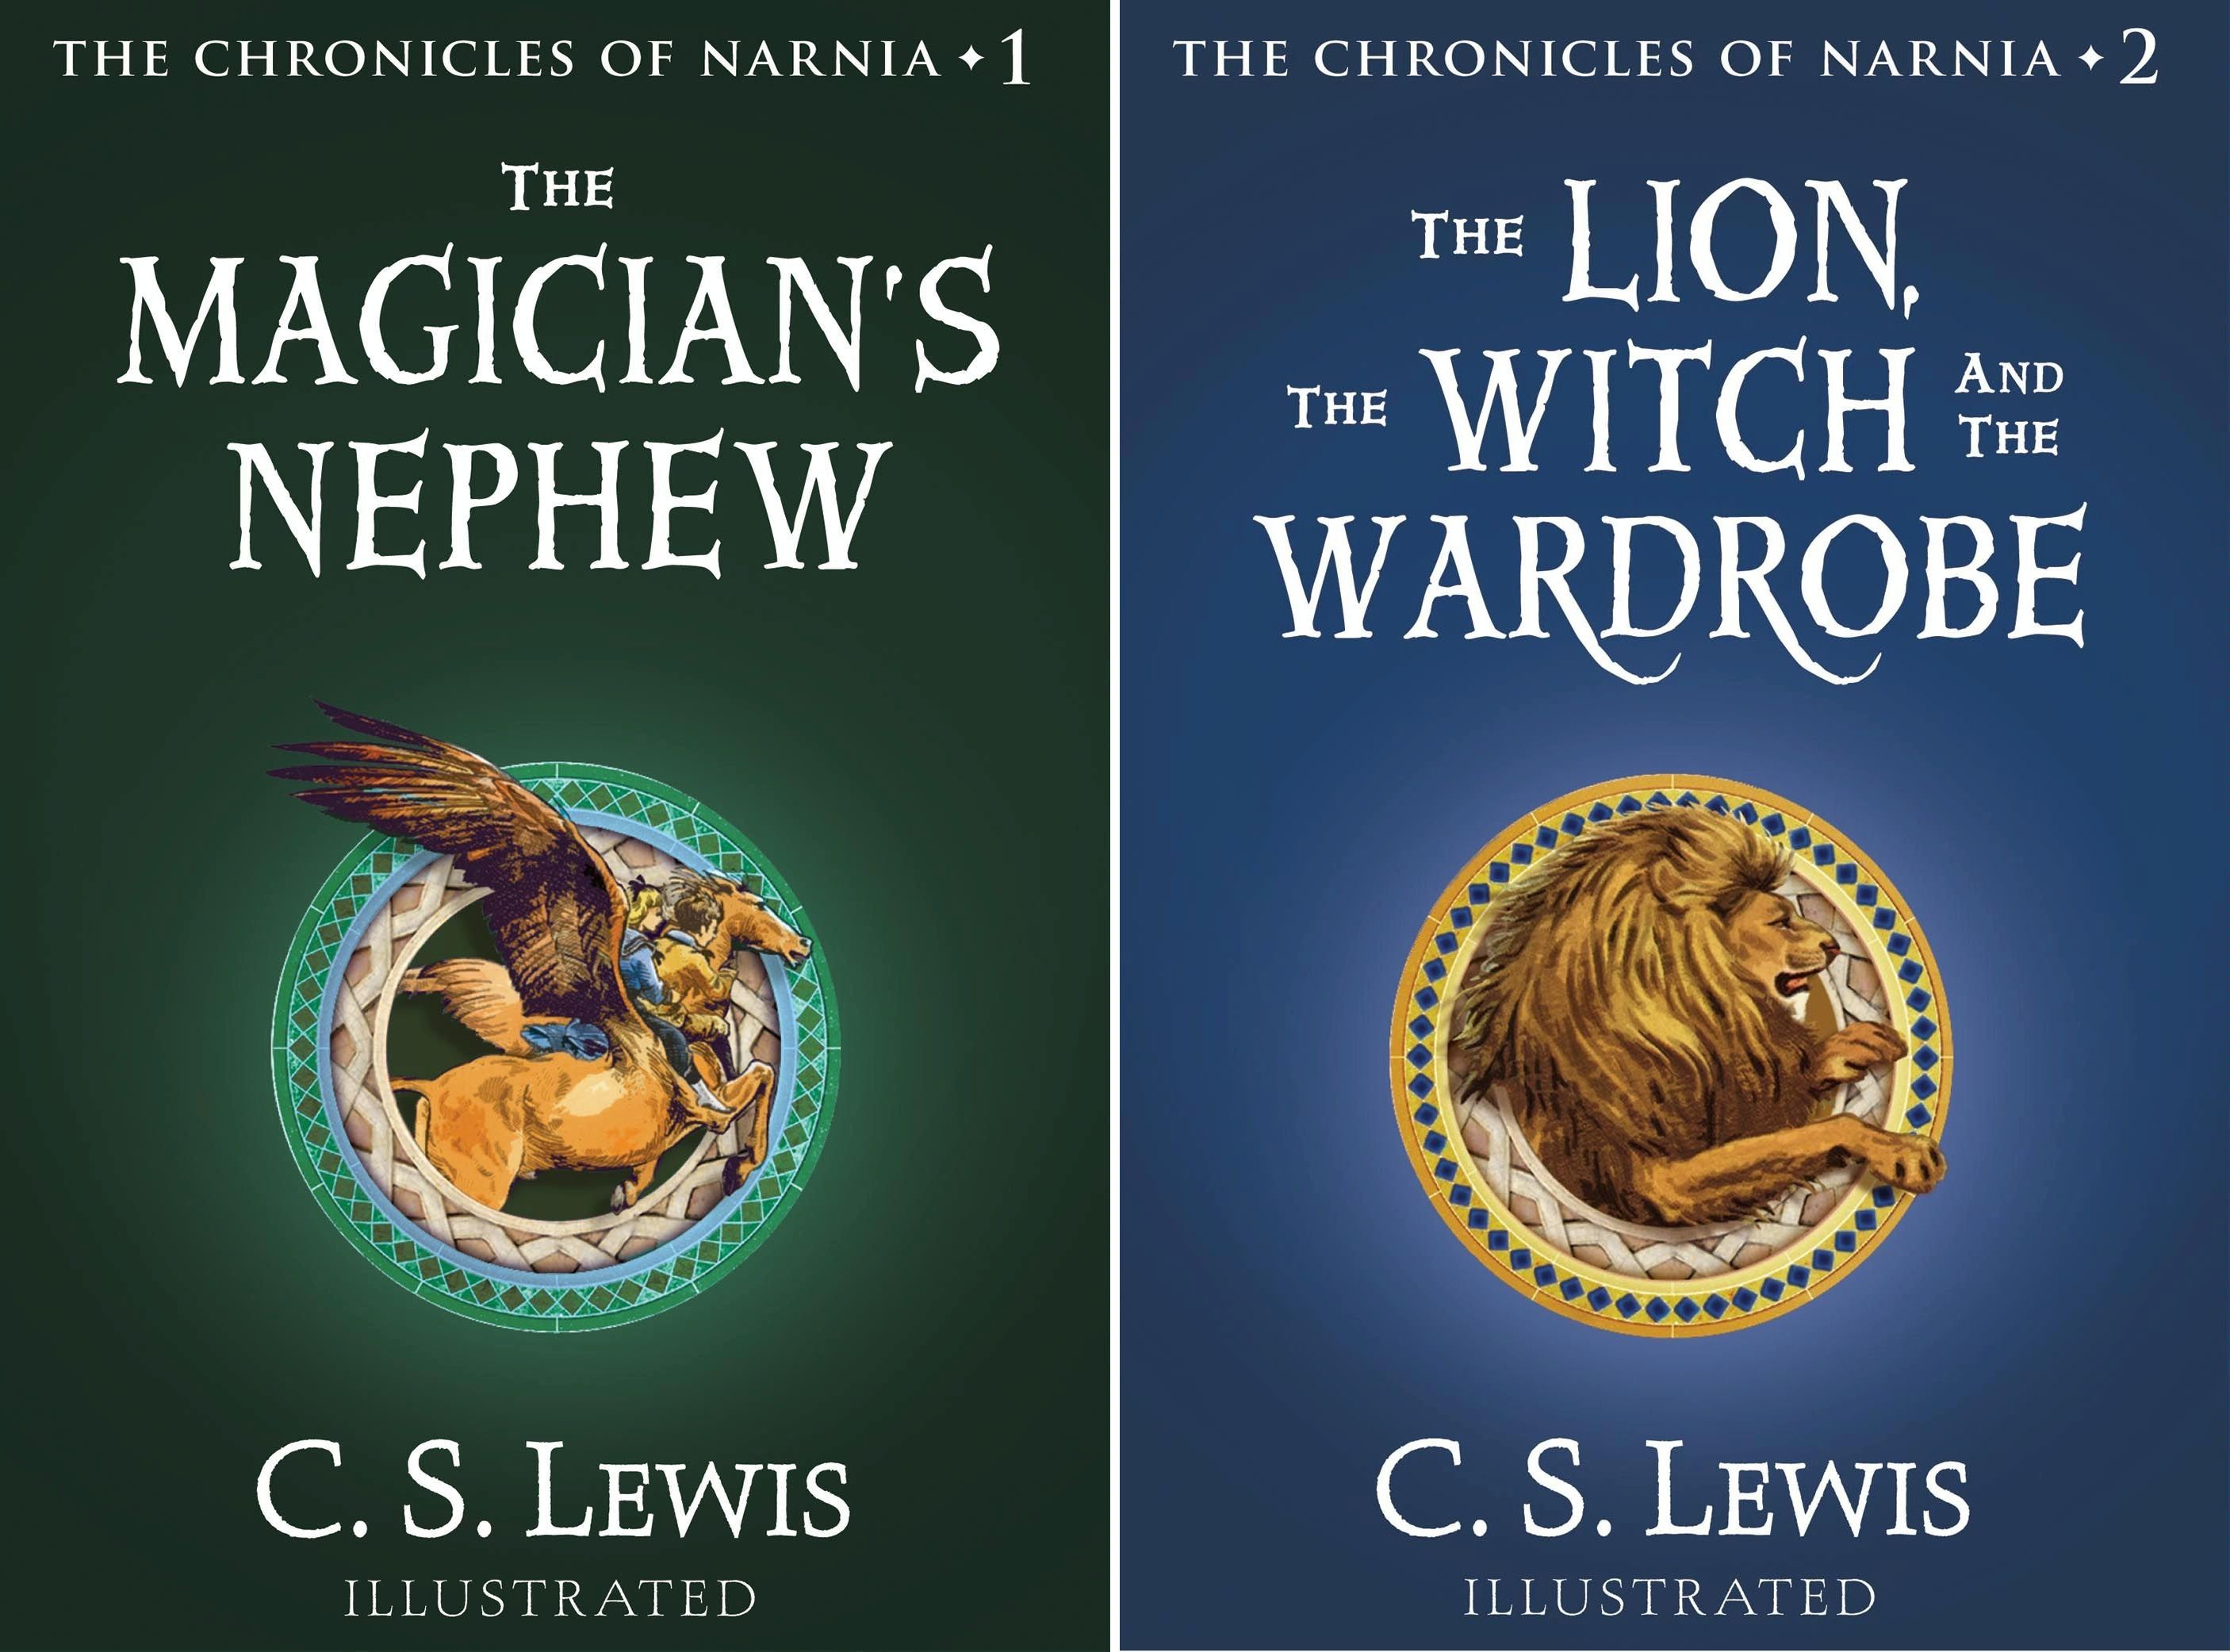 The Chronicles of Narnia Full-Color Oversize Gift Edition Box Set: The Magician's Nephew; The Lion, the Witch, and the Wardrobe (2 Book Series)